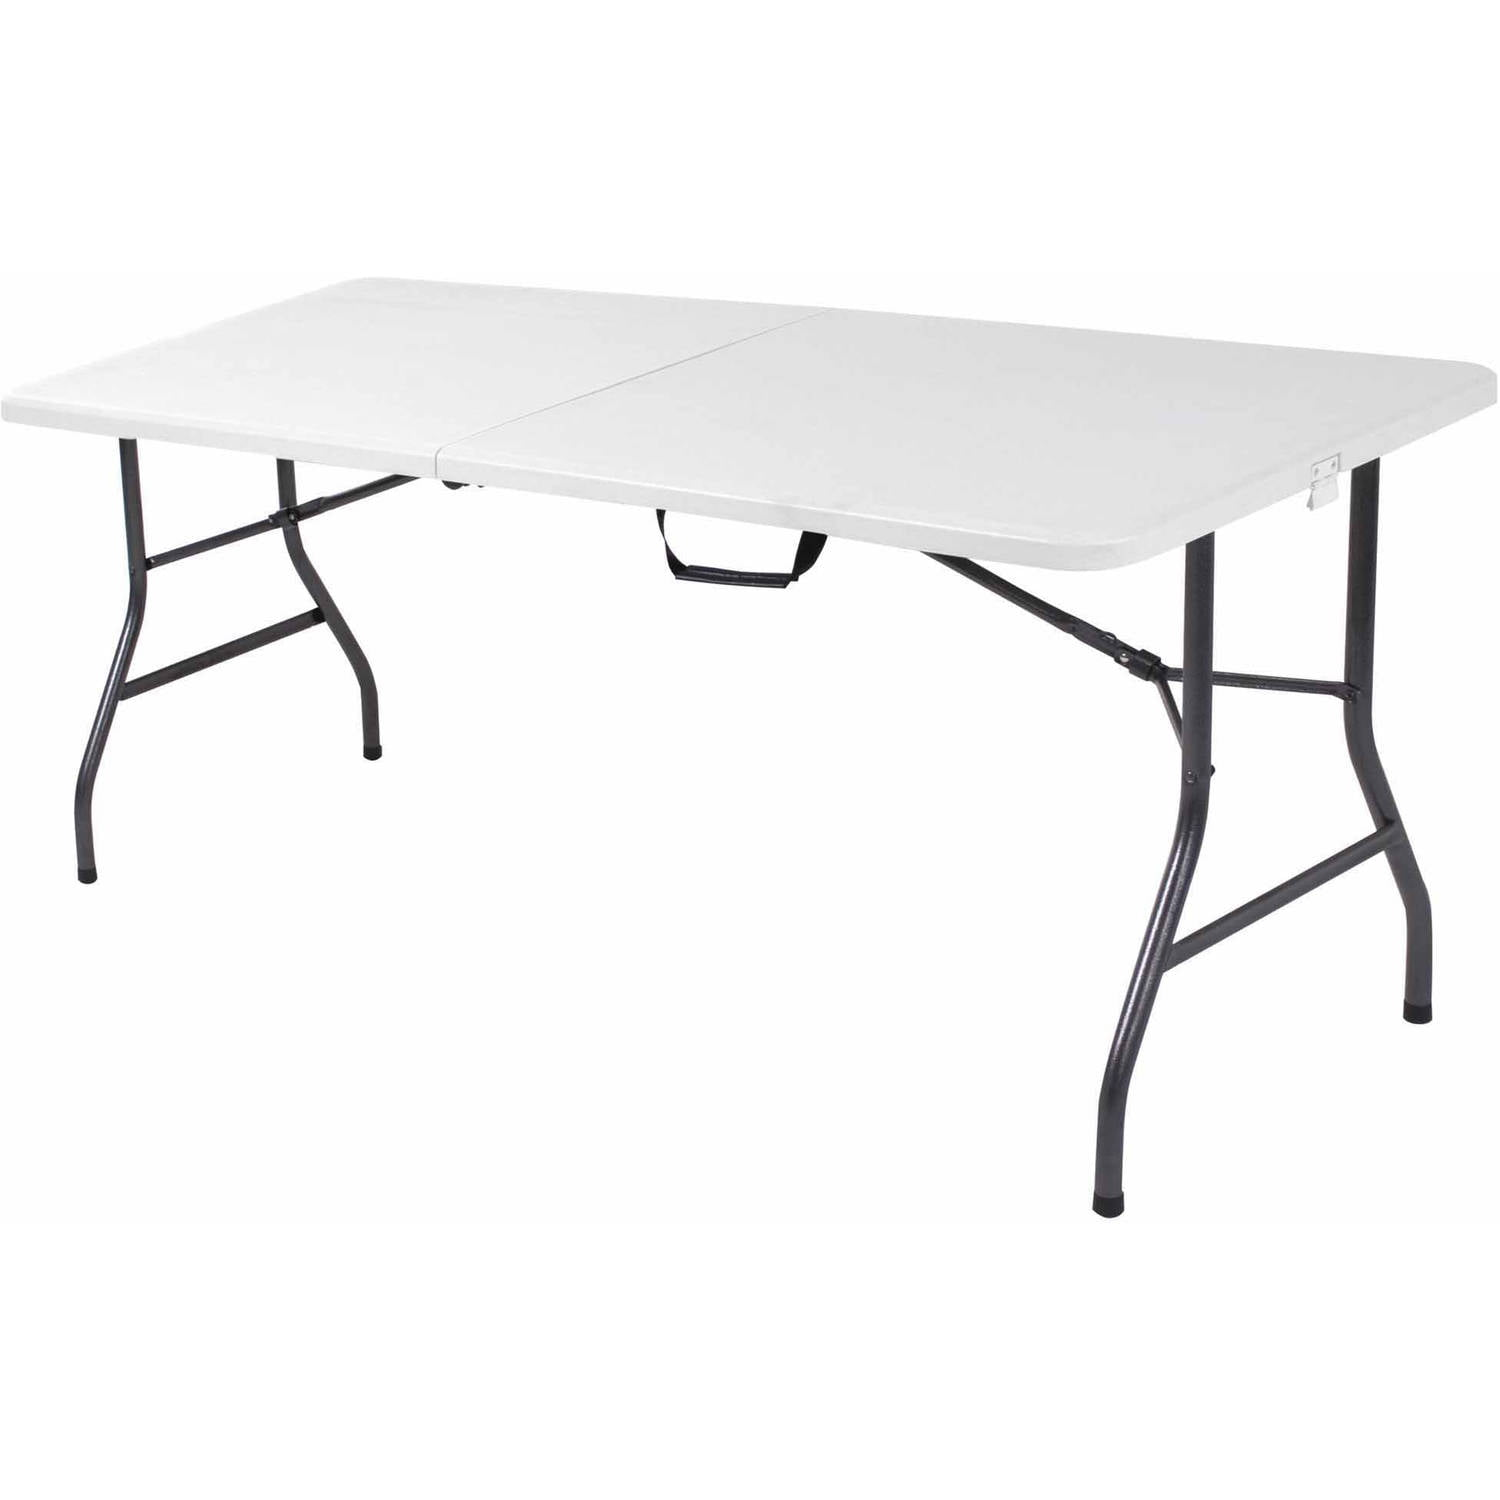 Folding Tables. Folding Tables   Chairs   Walmart com